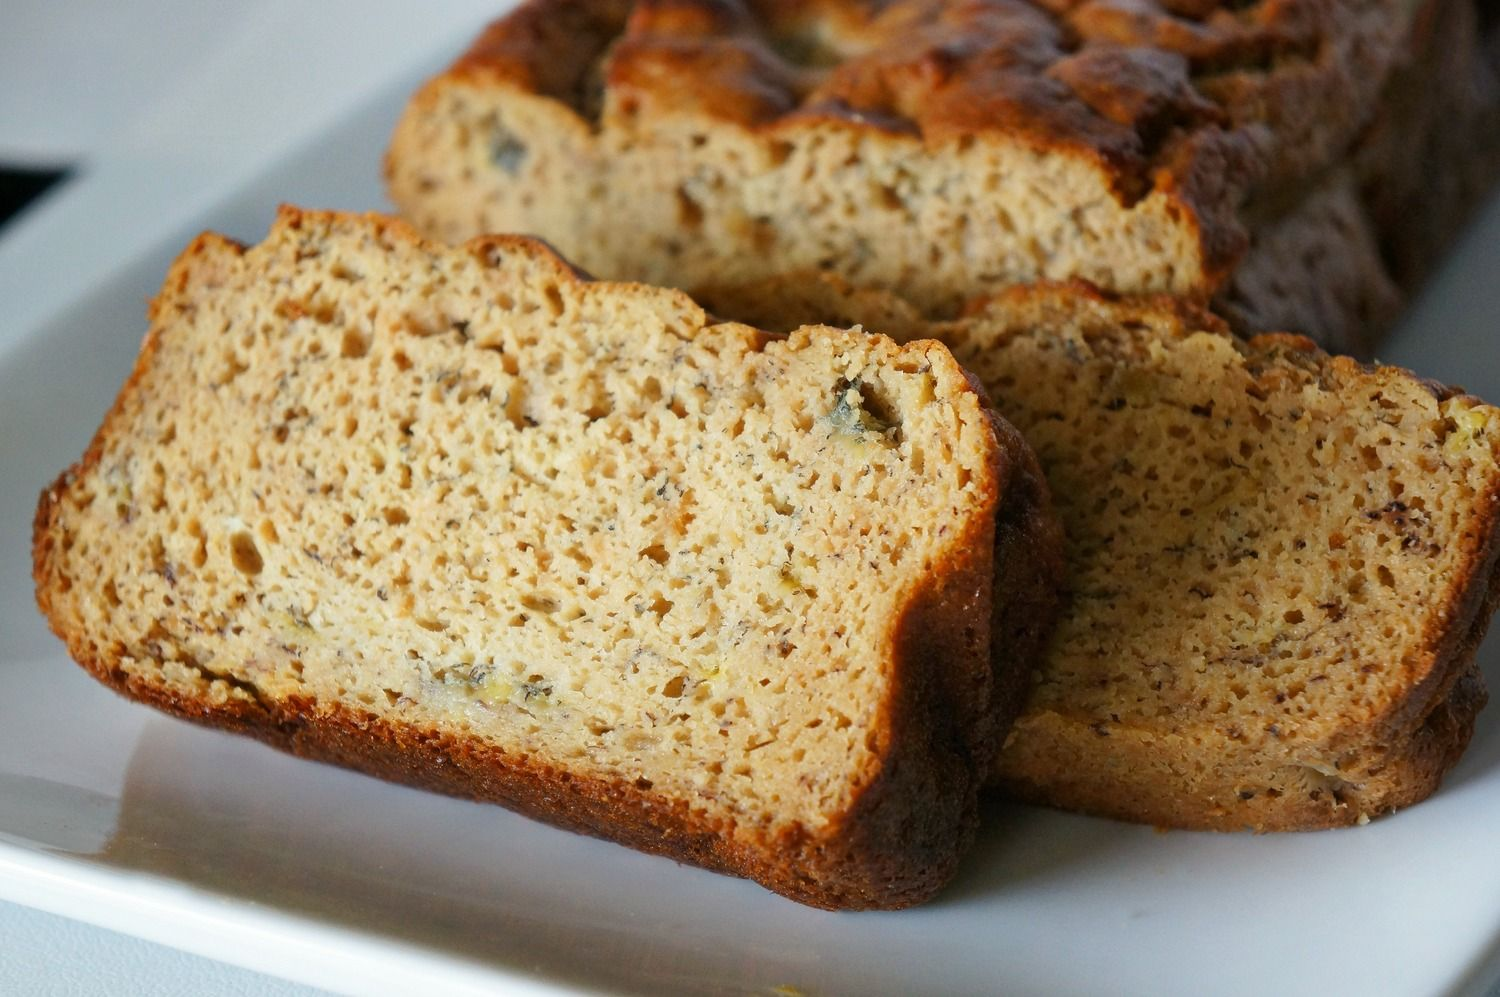 Finally! A moist, no-sugar-added, gluten-free, oil-free, whey protein banana bread!  Banana bread is and always has been one of my favorite baked goods so I HAD to create a healthy version so I won't feel guilty eating 2 or 3 pieces. Or 6.  If you have ever tried baking with whey protein